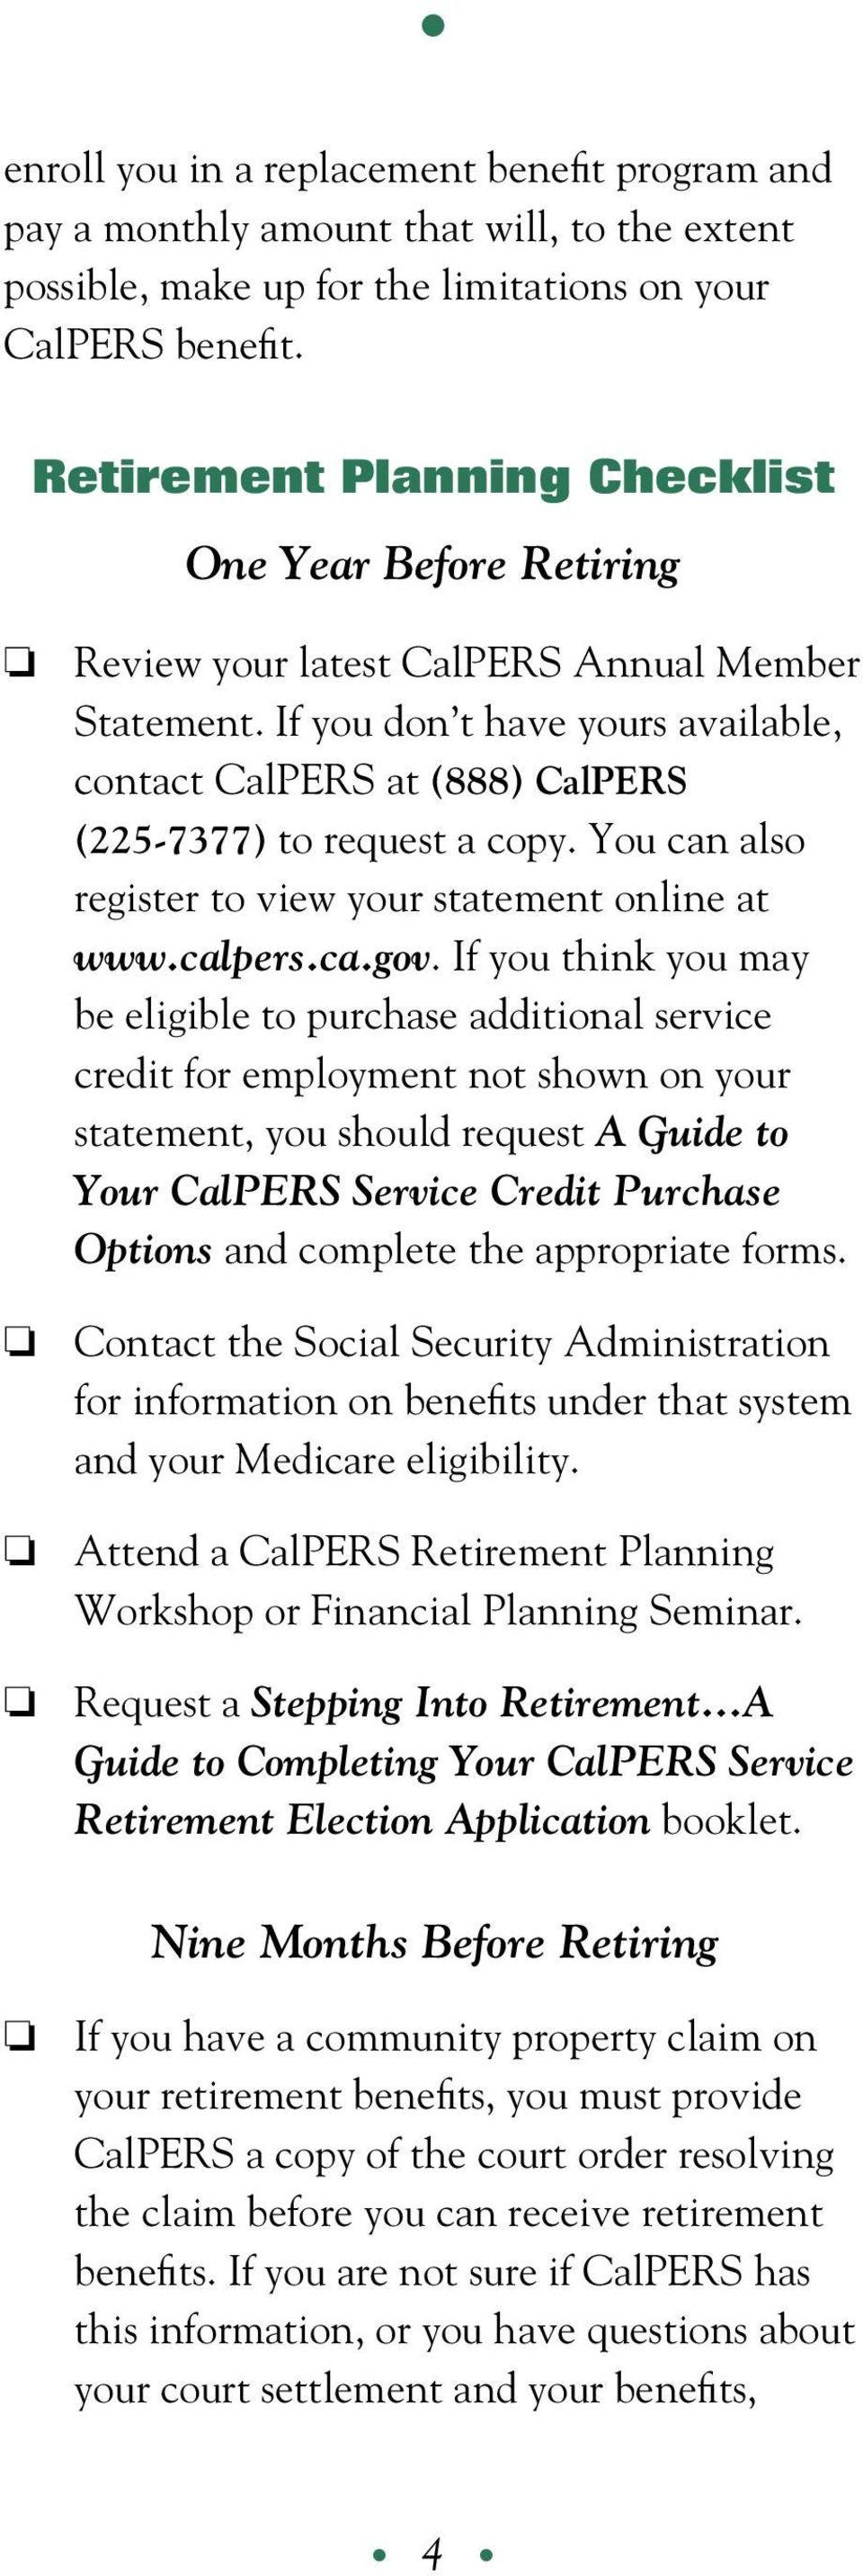 If you don t have yours available, contact CalPERS at (888) CalPERS (225-7377) to request a copy. You can also register to view your statement online at www.calpers.ca.gov.